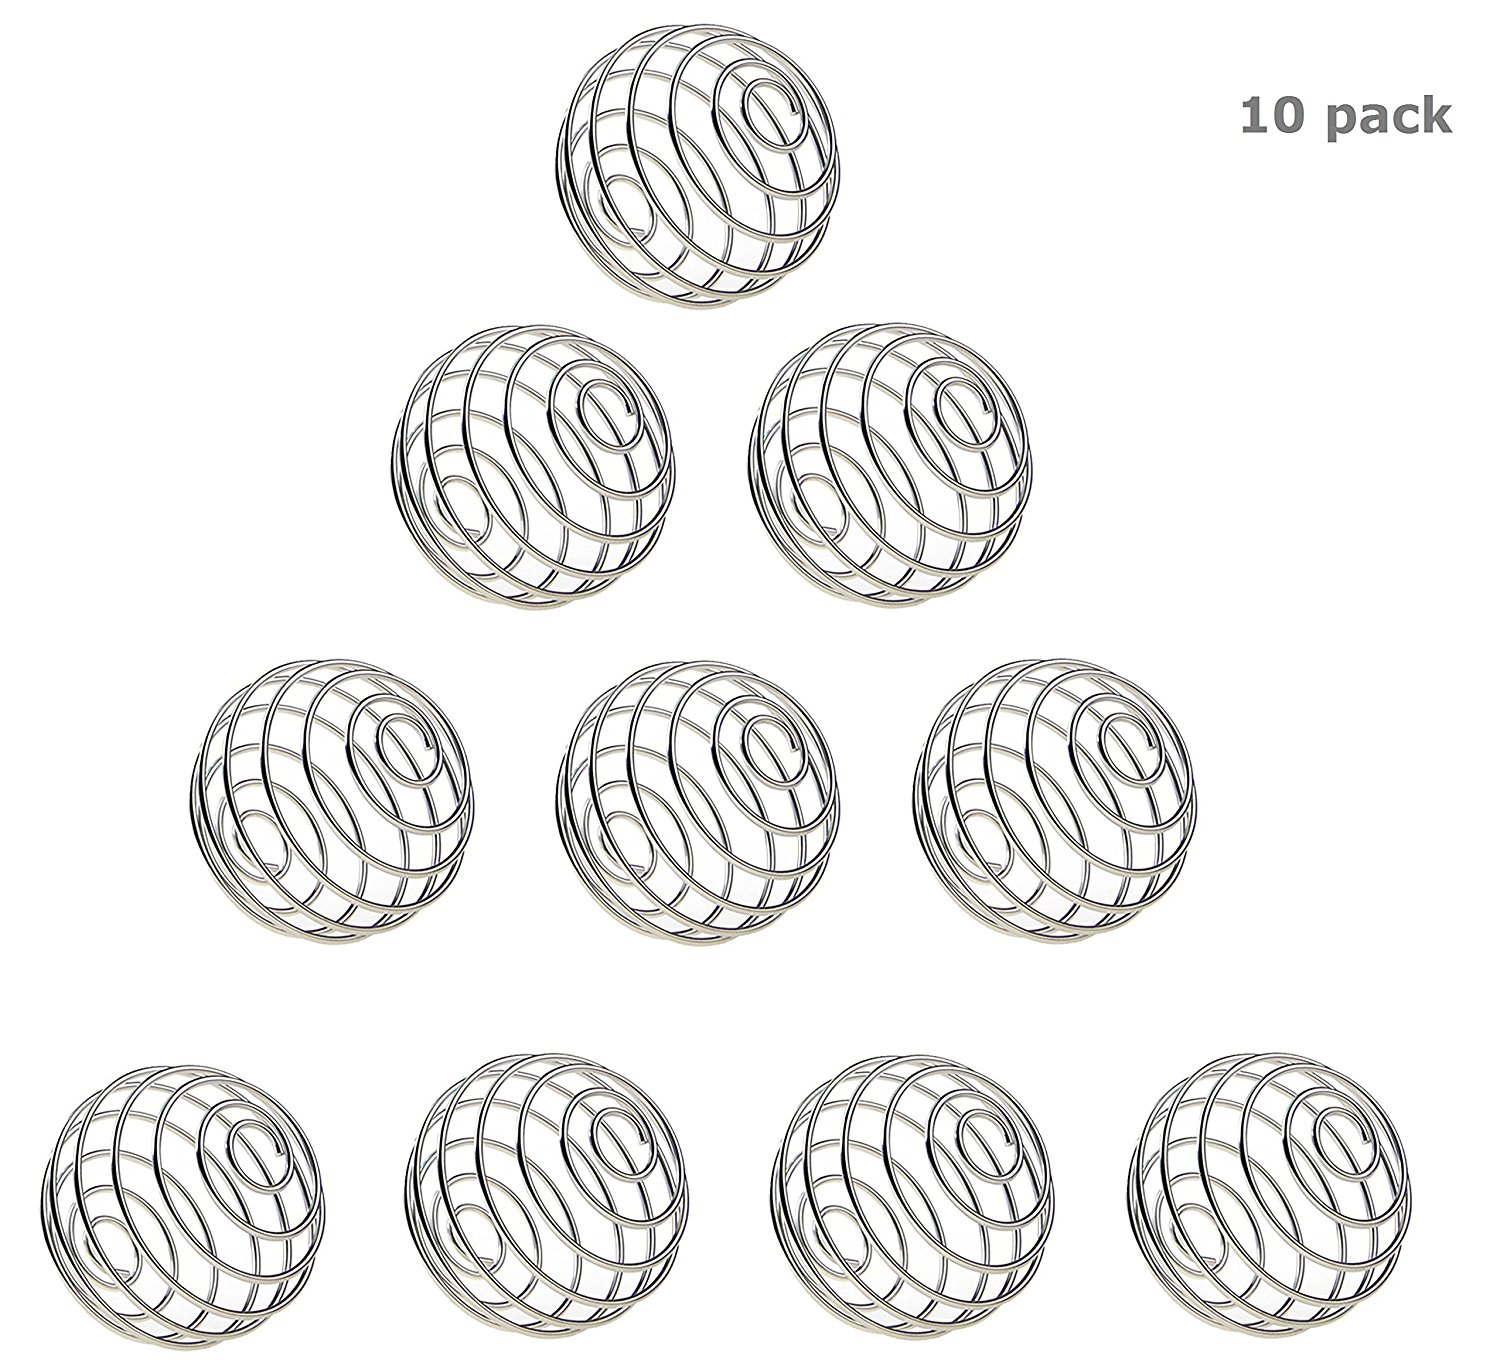 Wire Mixer Mixing Whisk Ball Replacement For Shaker Cup,Pack of 8 Mocollmax Stainless Whisk Ball Wire Shaker Ball 2.1 X 1.9